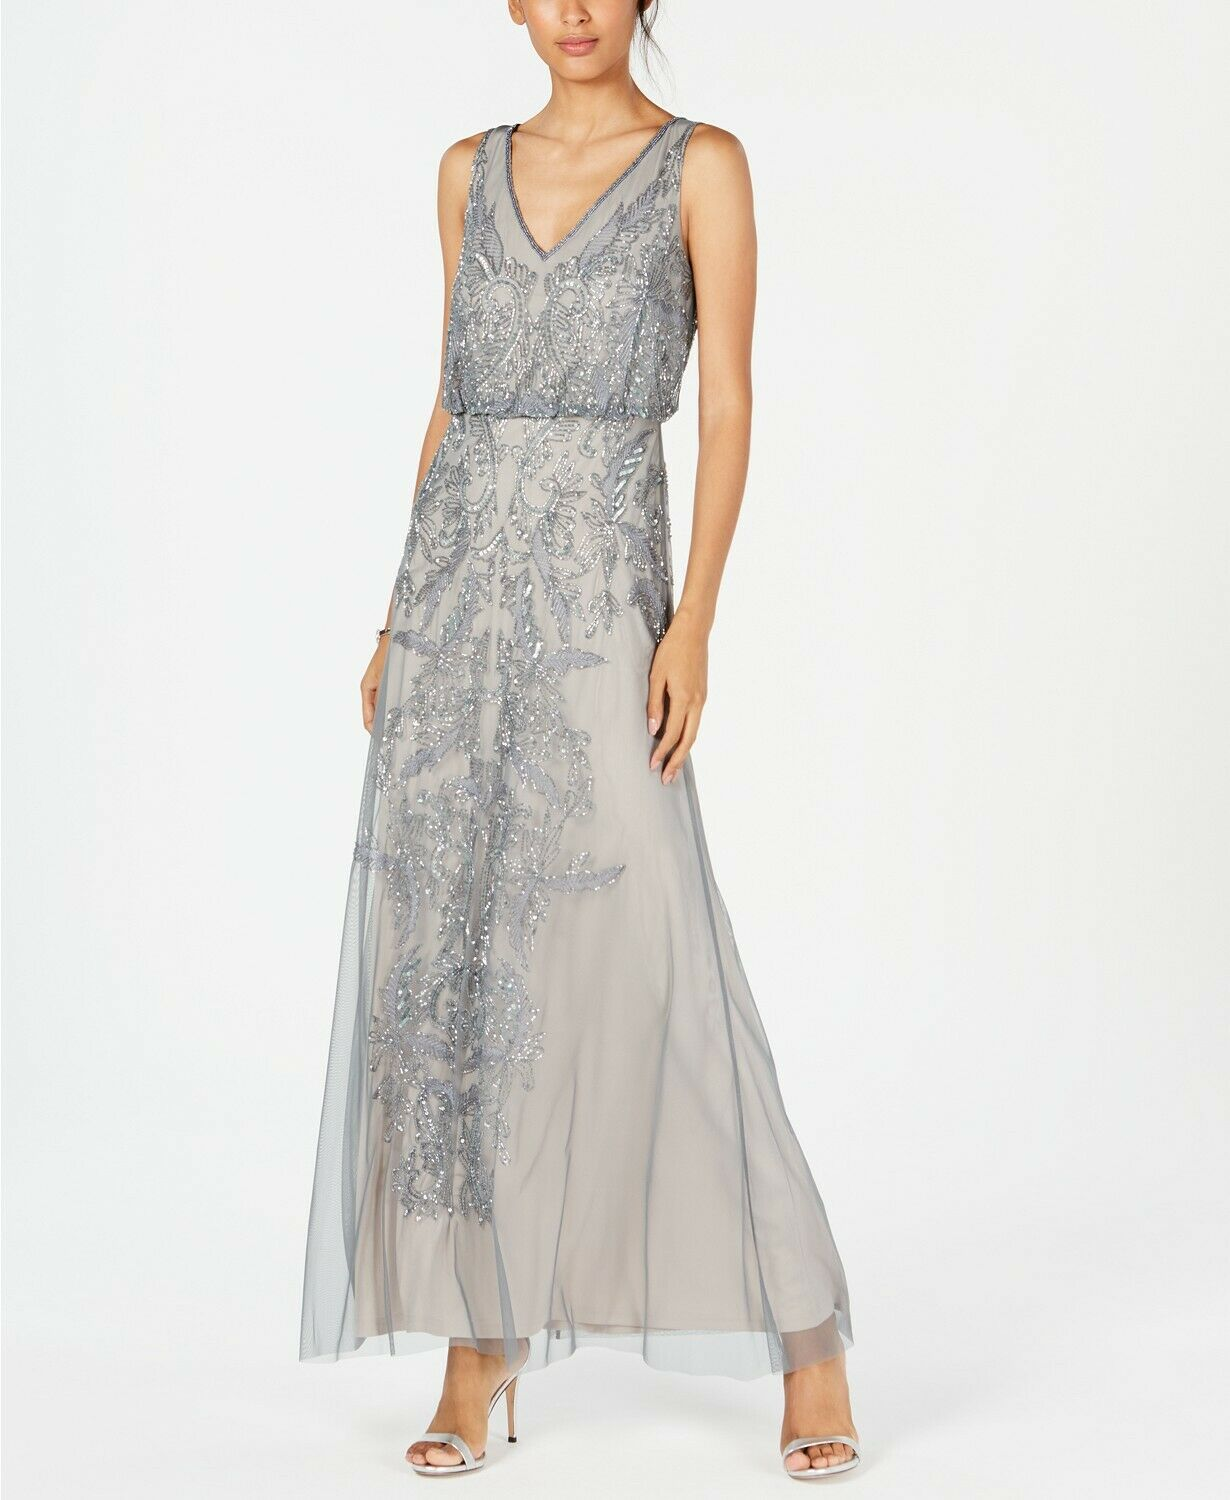 Adrianna Papell Beaded Blouson Mermaid Long Gown Pewter Silver Size 6